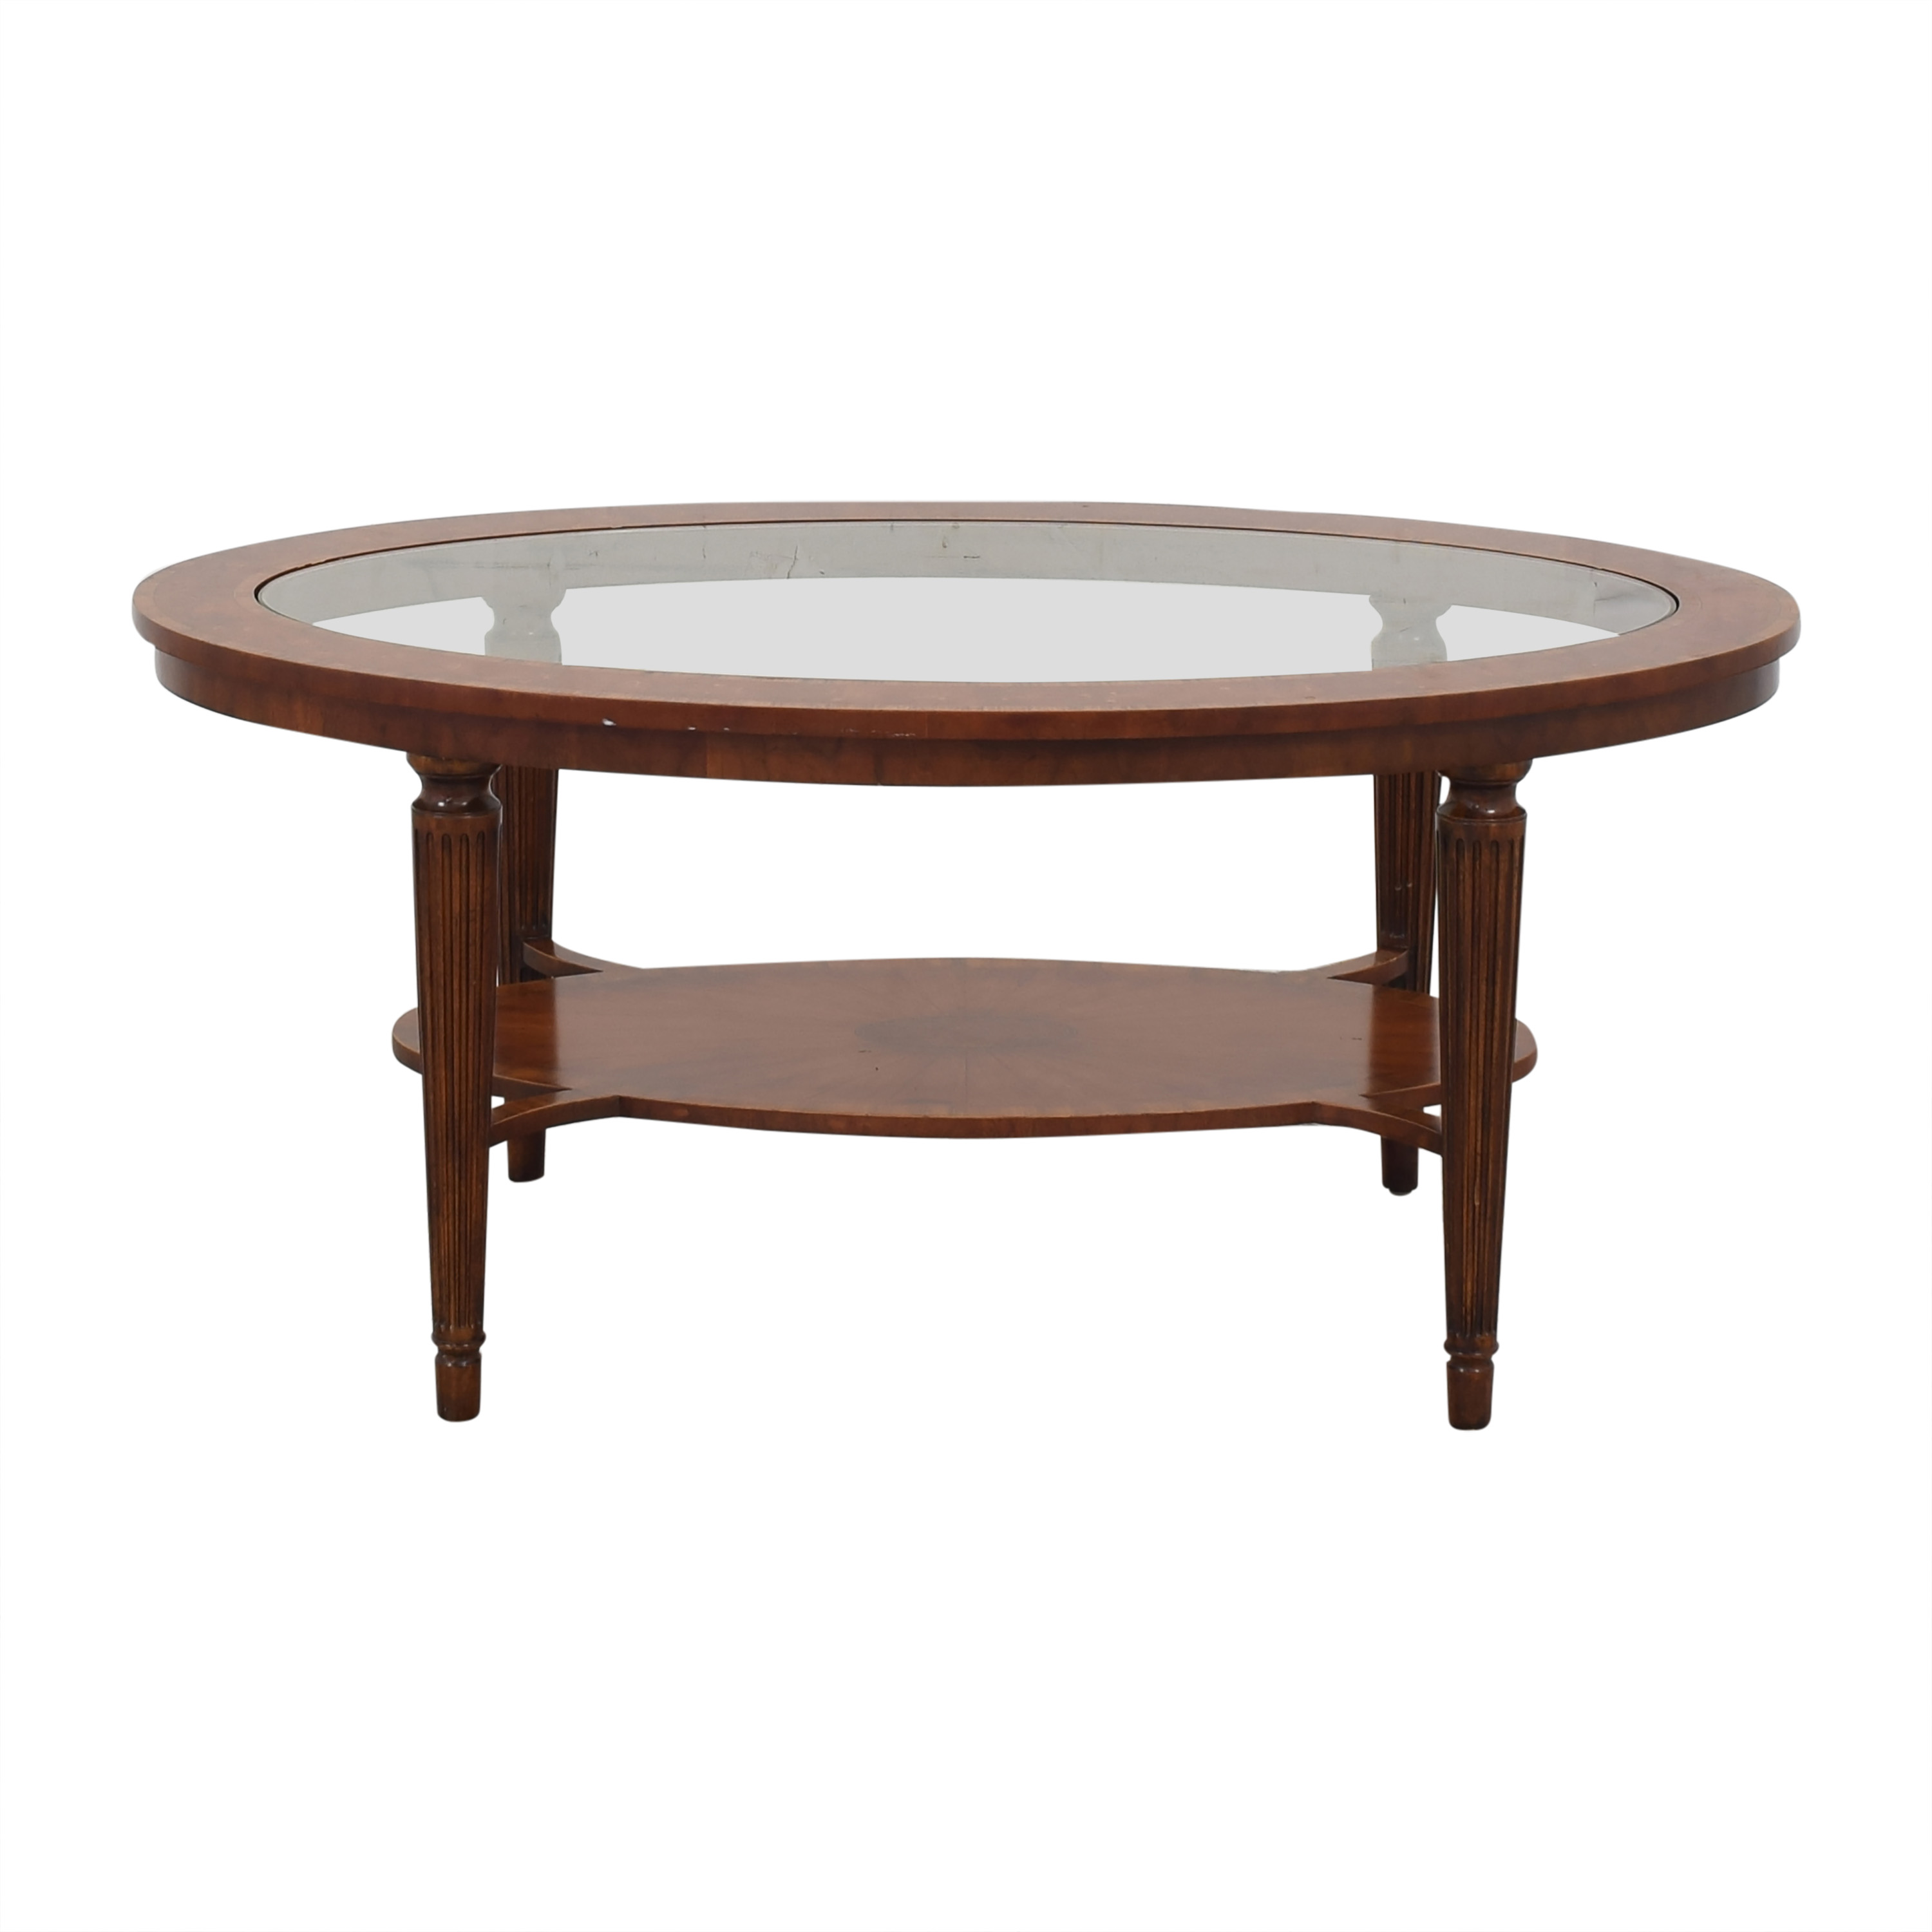 Maitland-Smith Oval Coffee Table sale